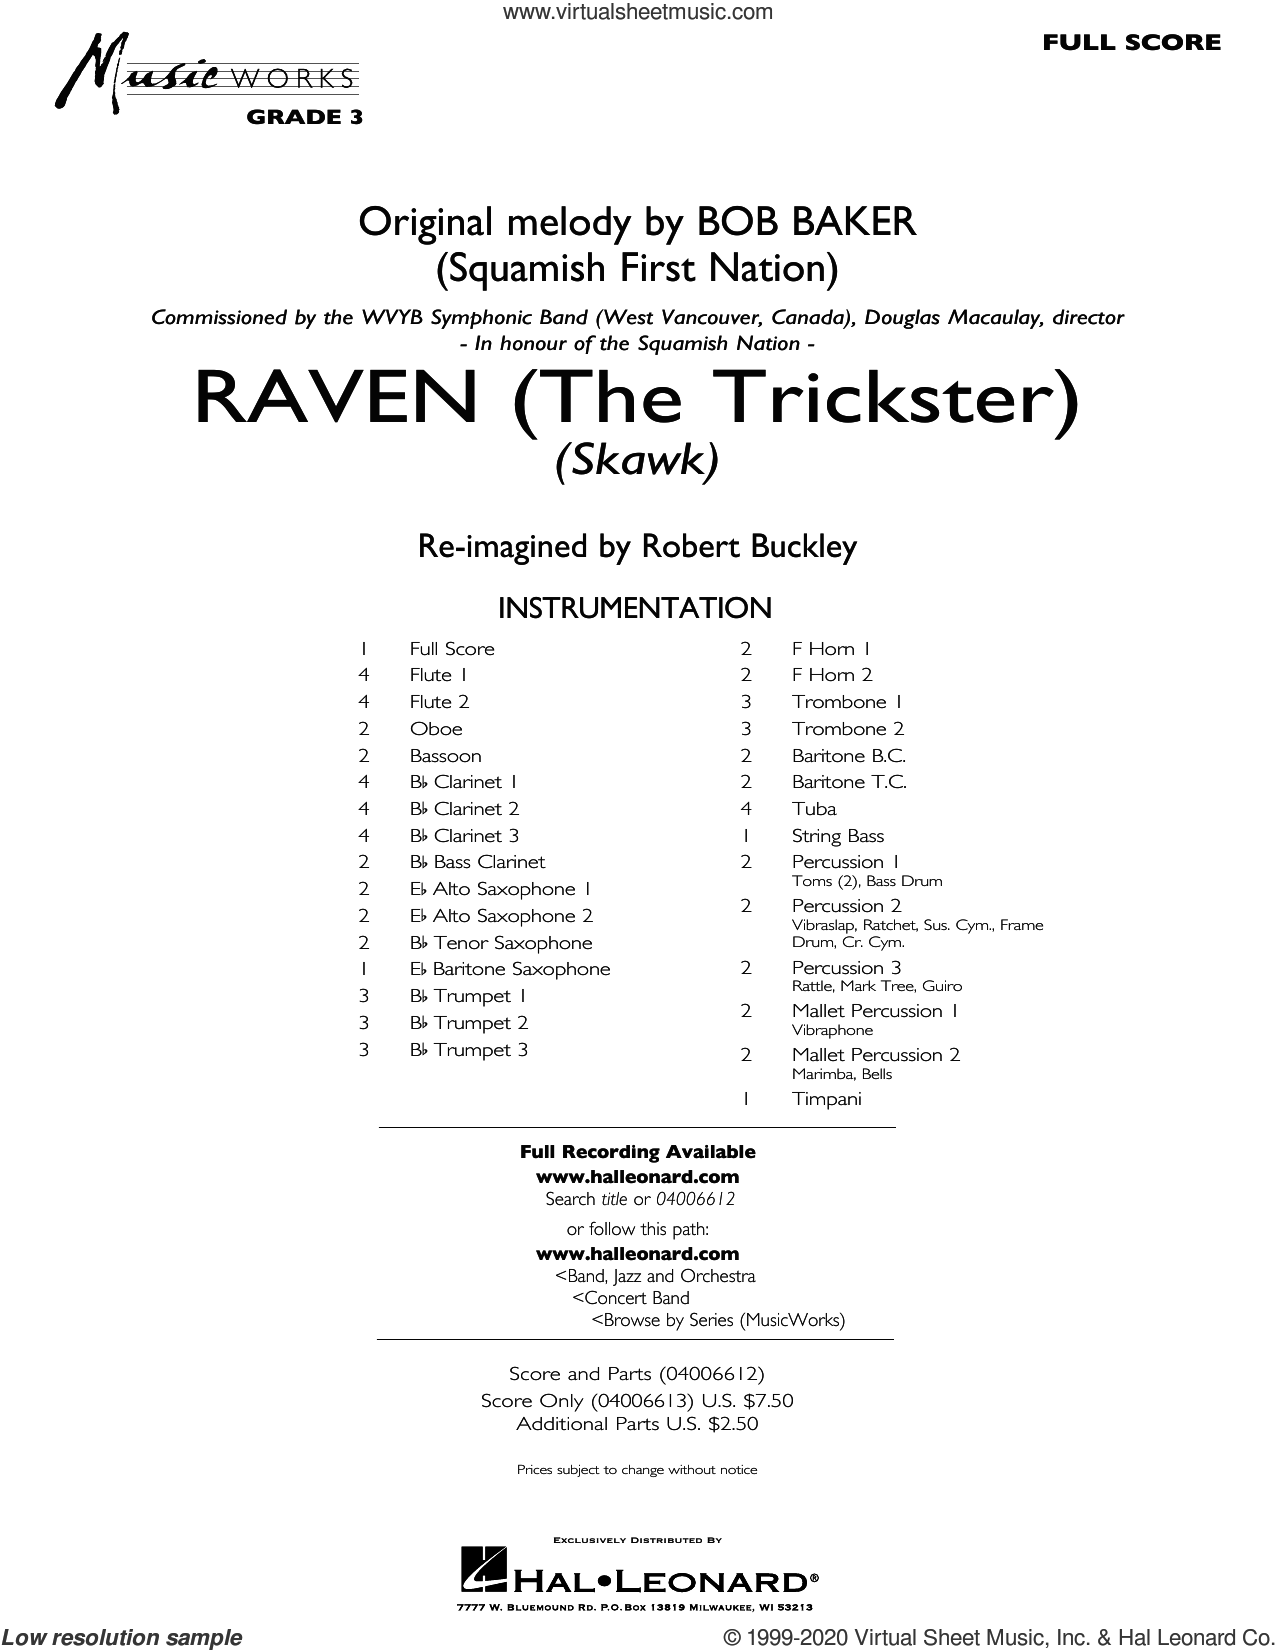 Raven (The Trickster) (arr. Robert Buckley) (COMPLETE) sheet music for concert band by Bob Baker and Robert Buckley, intermediate skill level